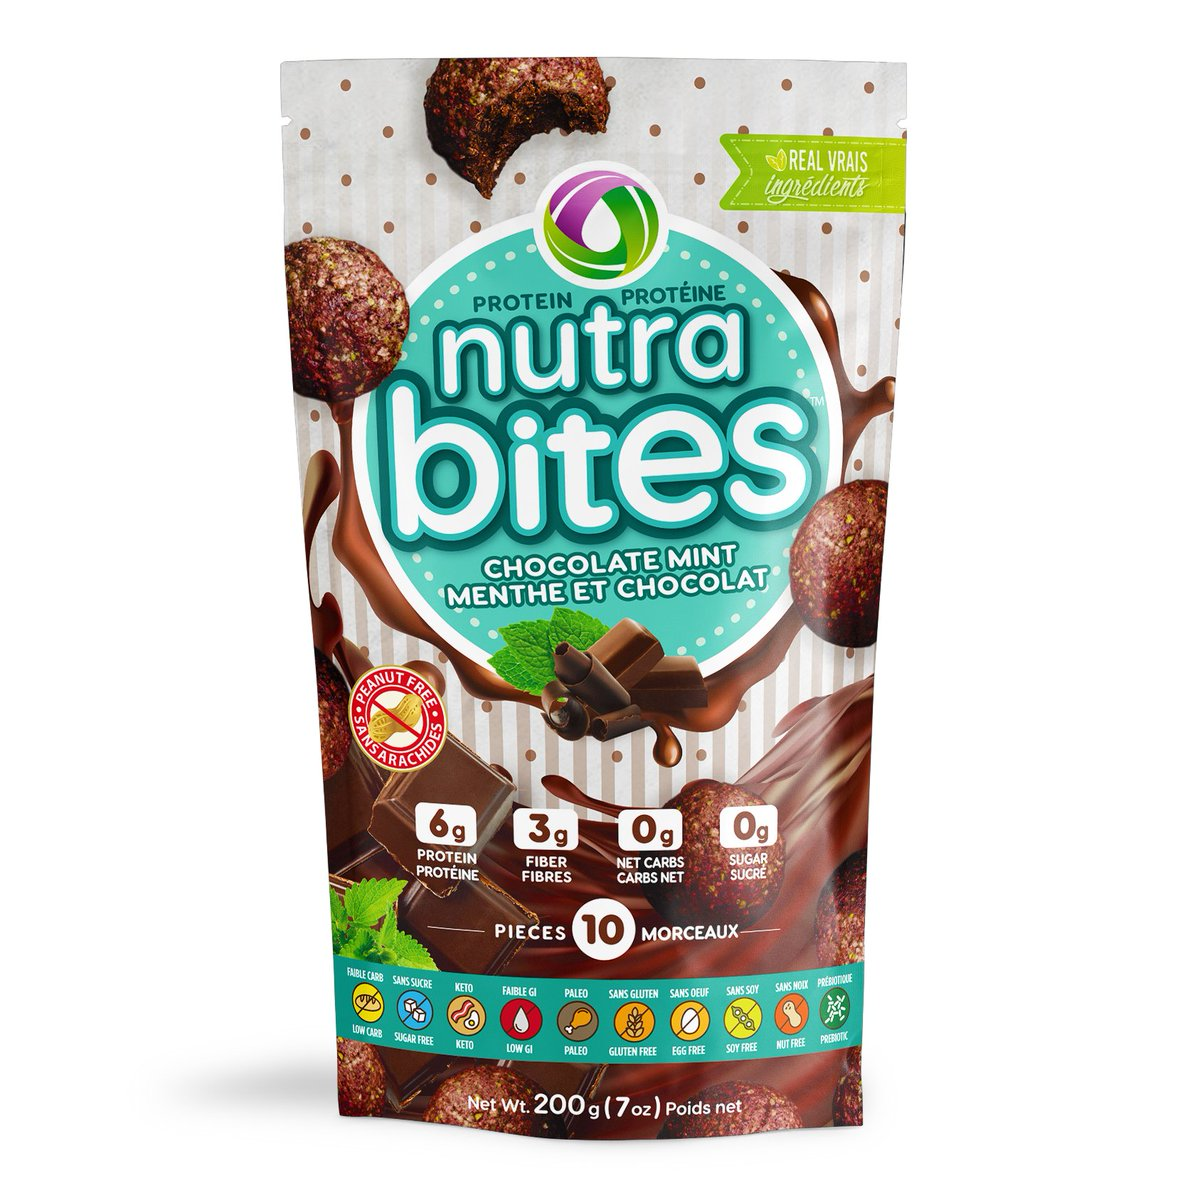 The perfect #FridayFuel: Nutrabites! With 6 grams of protein + 3 grams of fiber in each bite, these are great for a filling AND delicious snack Order yours here: https://bddy.me/2TxUg3Tpic.twitter.com/H2RxXtPMsq